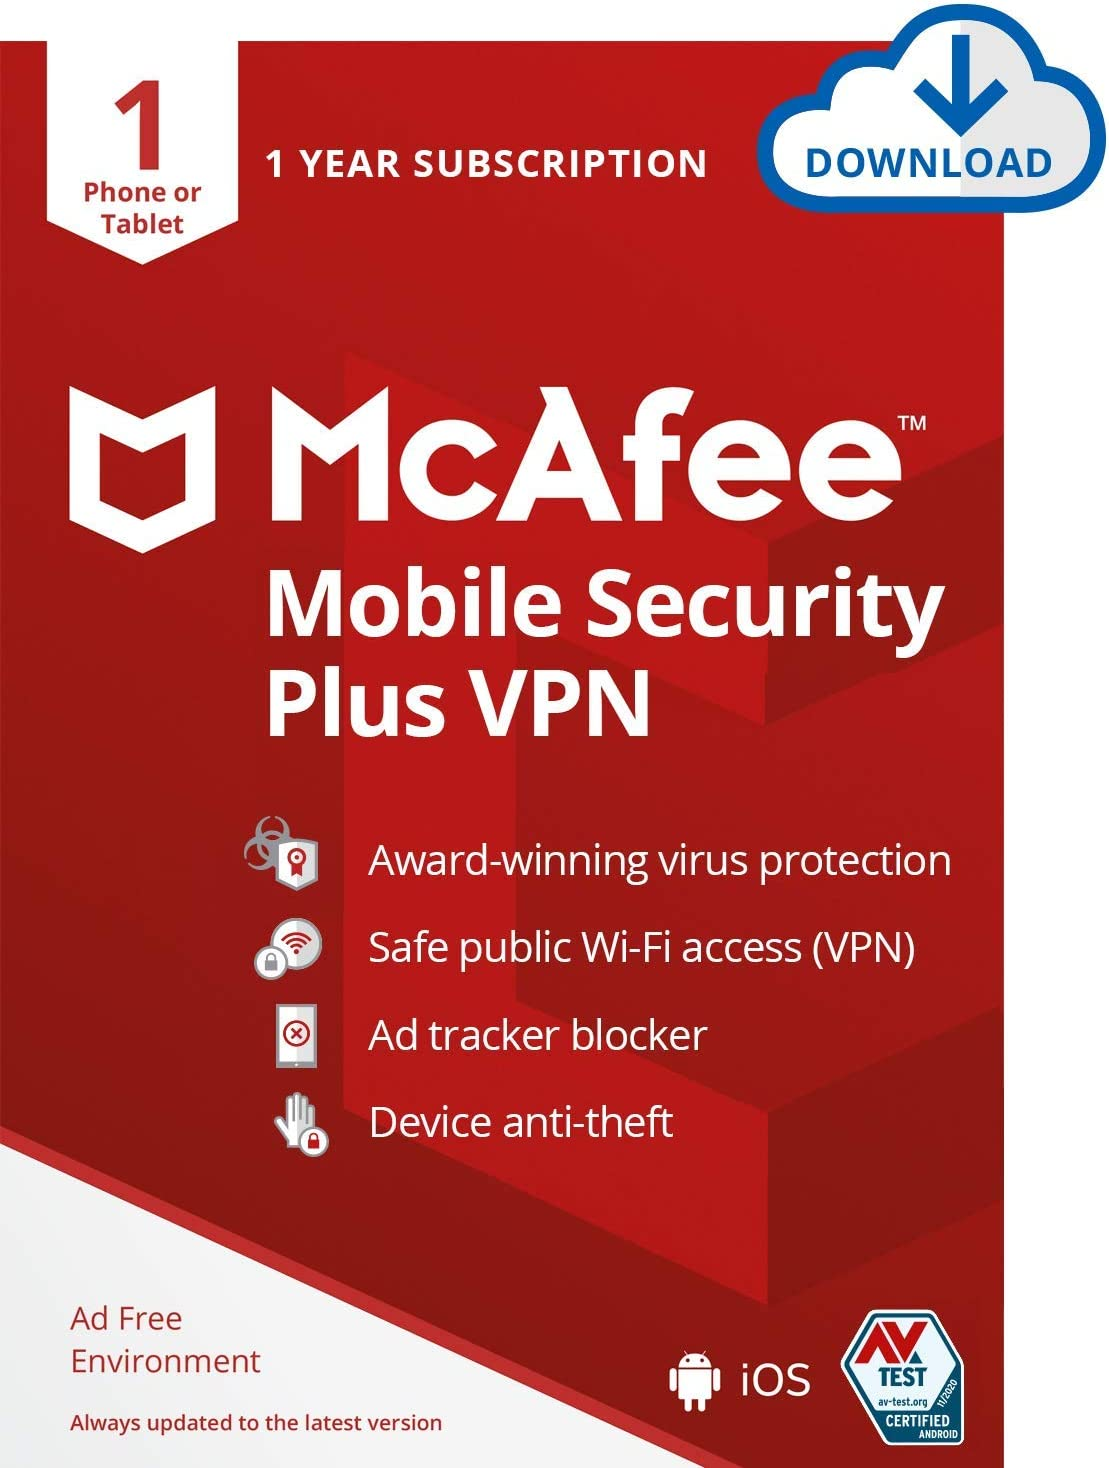 McAfee Mobile Security Plus VPN 2021 Tablet Antivir Cheap mail order shopping shopping 1 Phone or